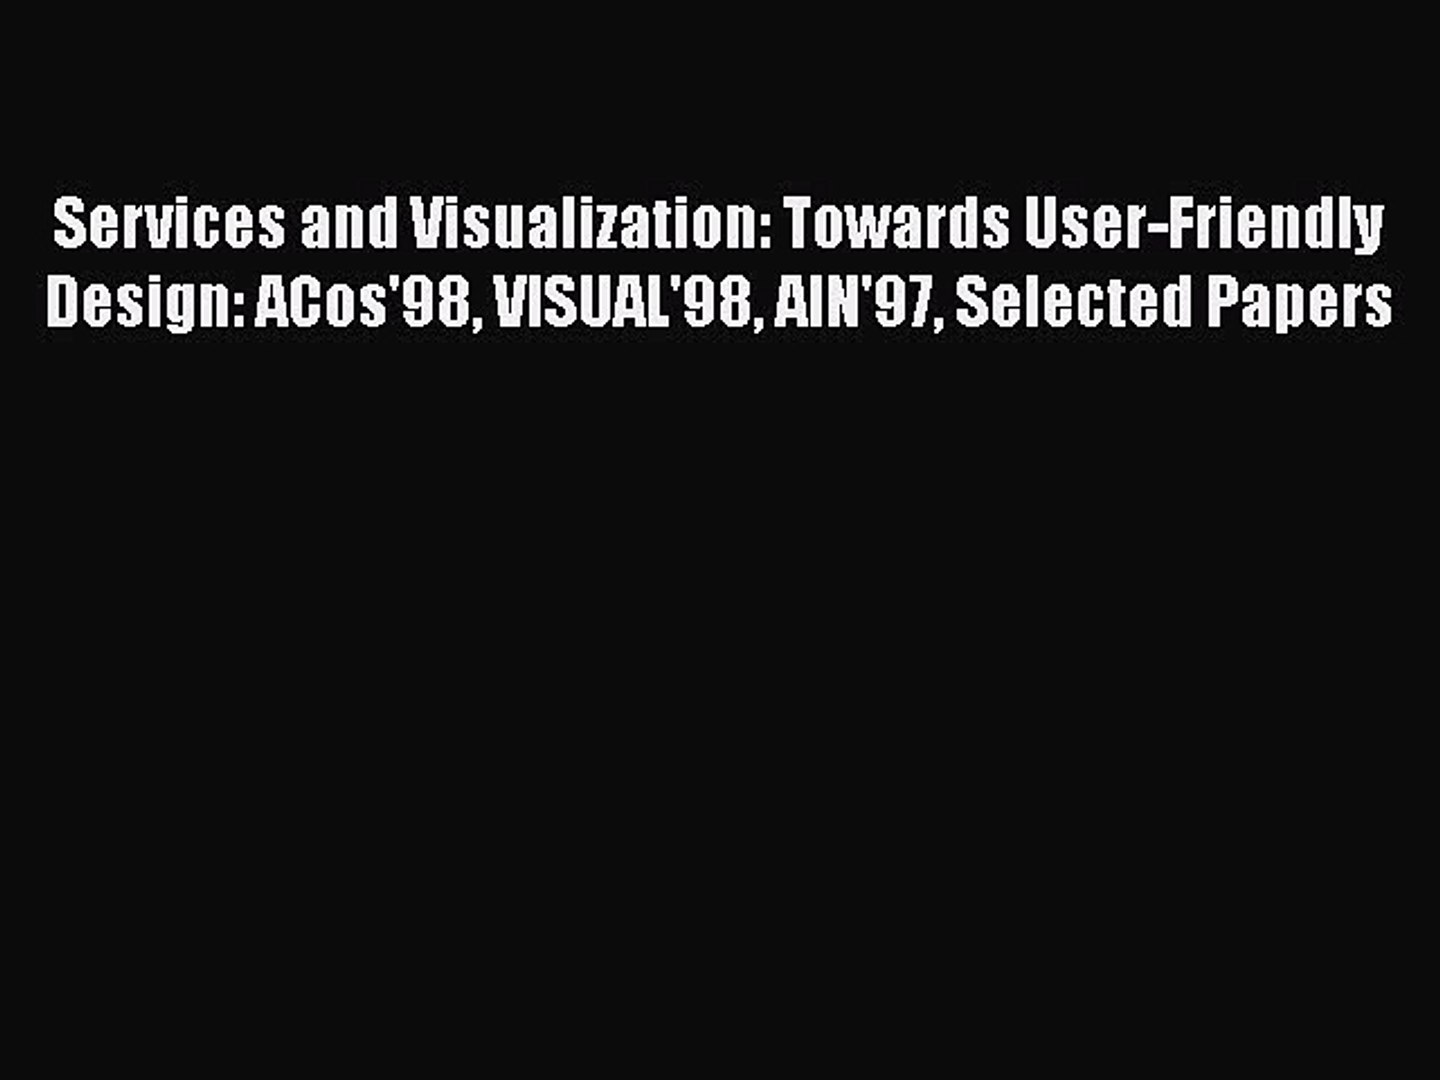 Read Services and Visualization: Towards User-Friendly Design: ACos'98 VISUAL'98 AIN'